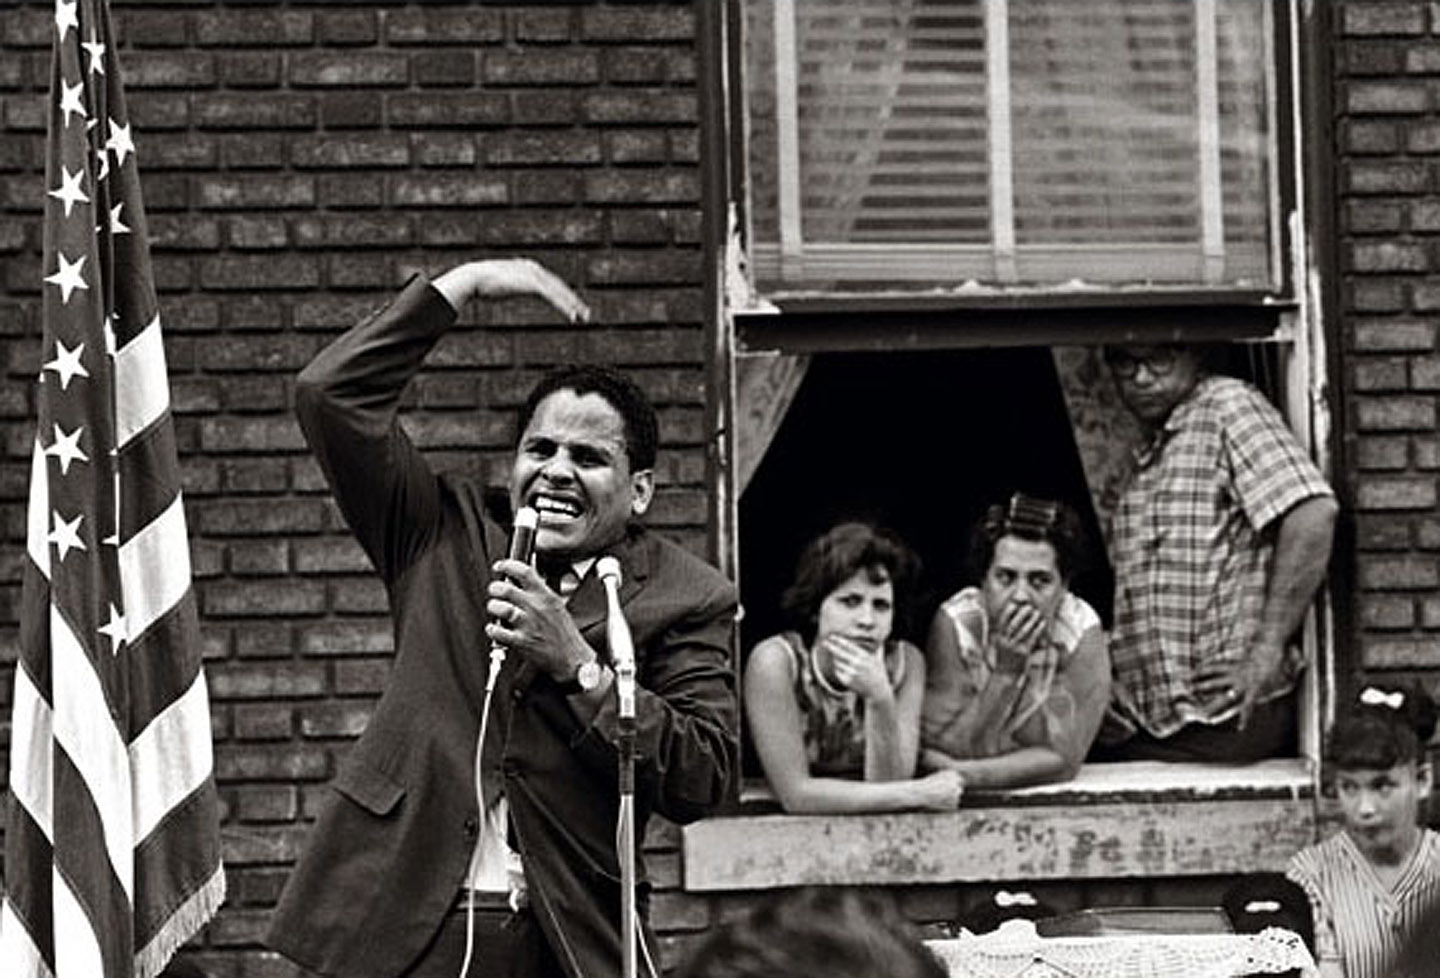 """El Ministro, Pentecostal street service, Brooklyn, New York, 1964. Photo: Frank Espada/Library of Congress, The Puerto Rican Diaspora. From """"Evangelicals respond to The Storm of 1960-1977 in Williamsburg & Greenpoint, Brooklyn"""""""